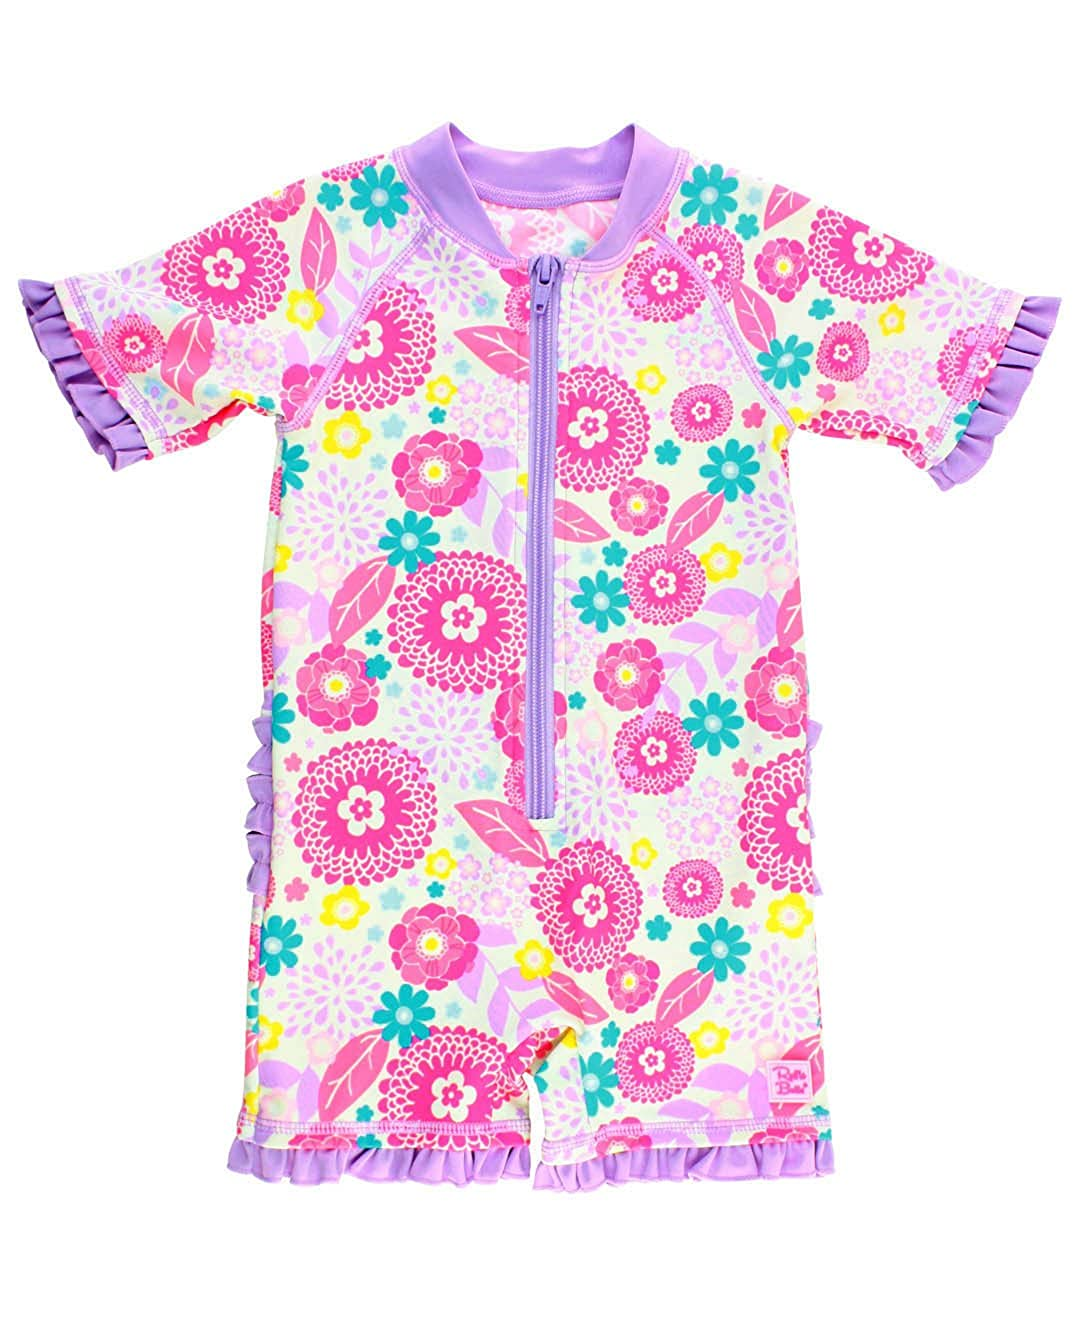 RuffleButts Baby/Toddler Girls Floral One Piece UPF 50+ Sun Protective Rash Guard Swimsuit Short Sleeve Romper RGSPUXX-1PST-BABY